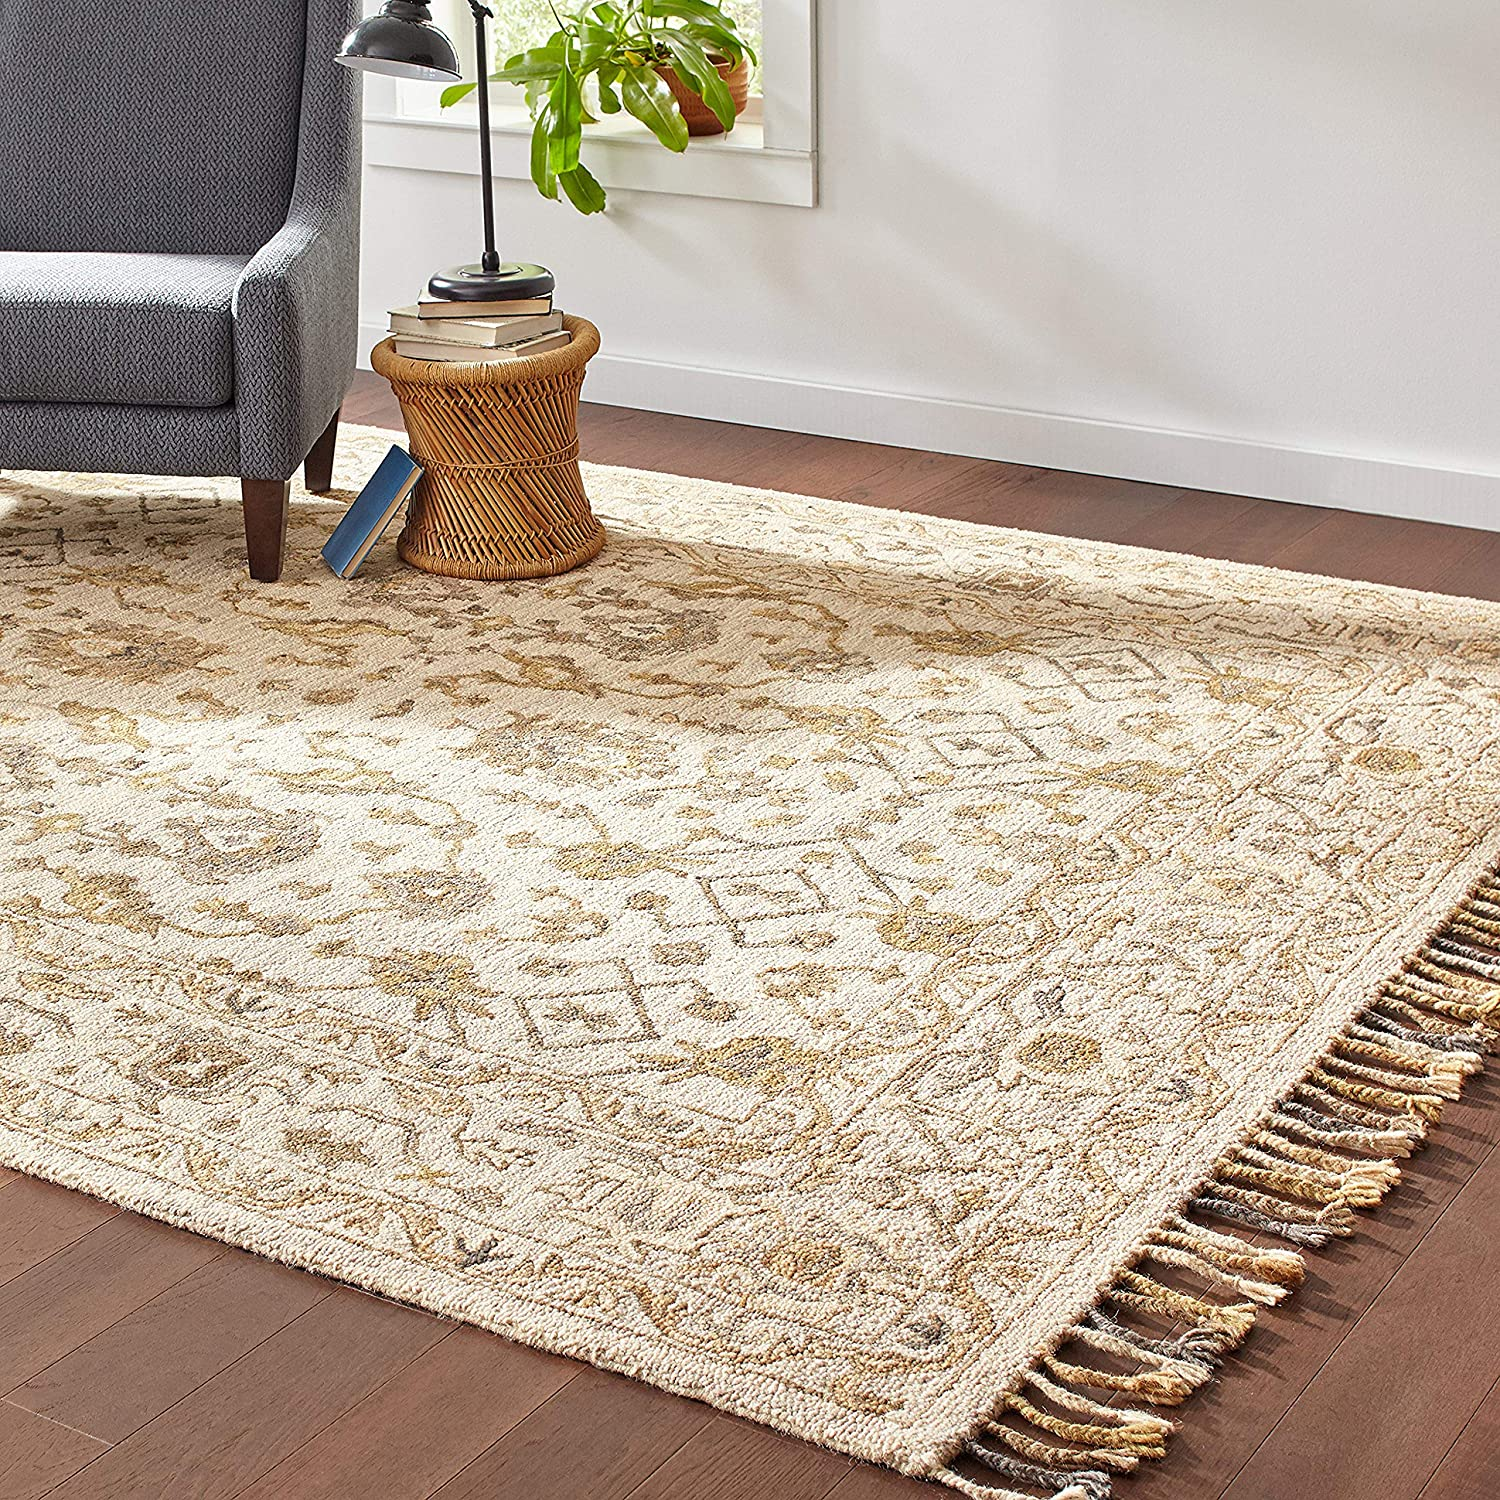 Stone & Beam Lottie Traditional Wool Area Rug, 8